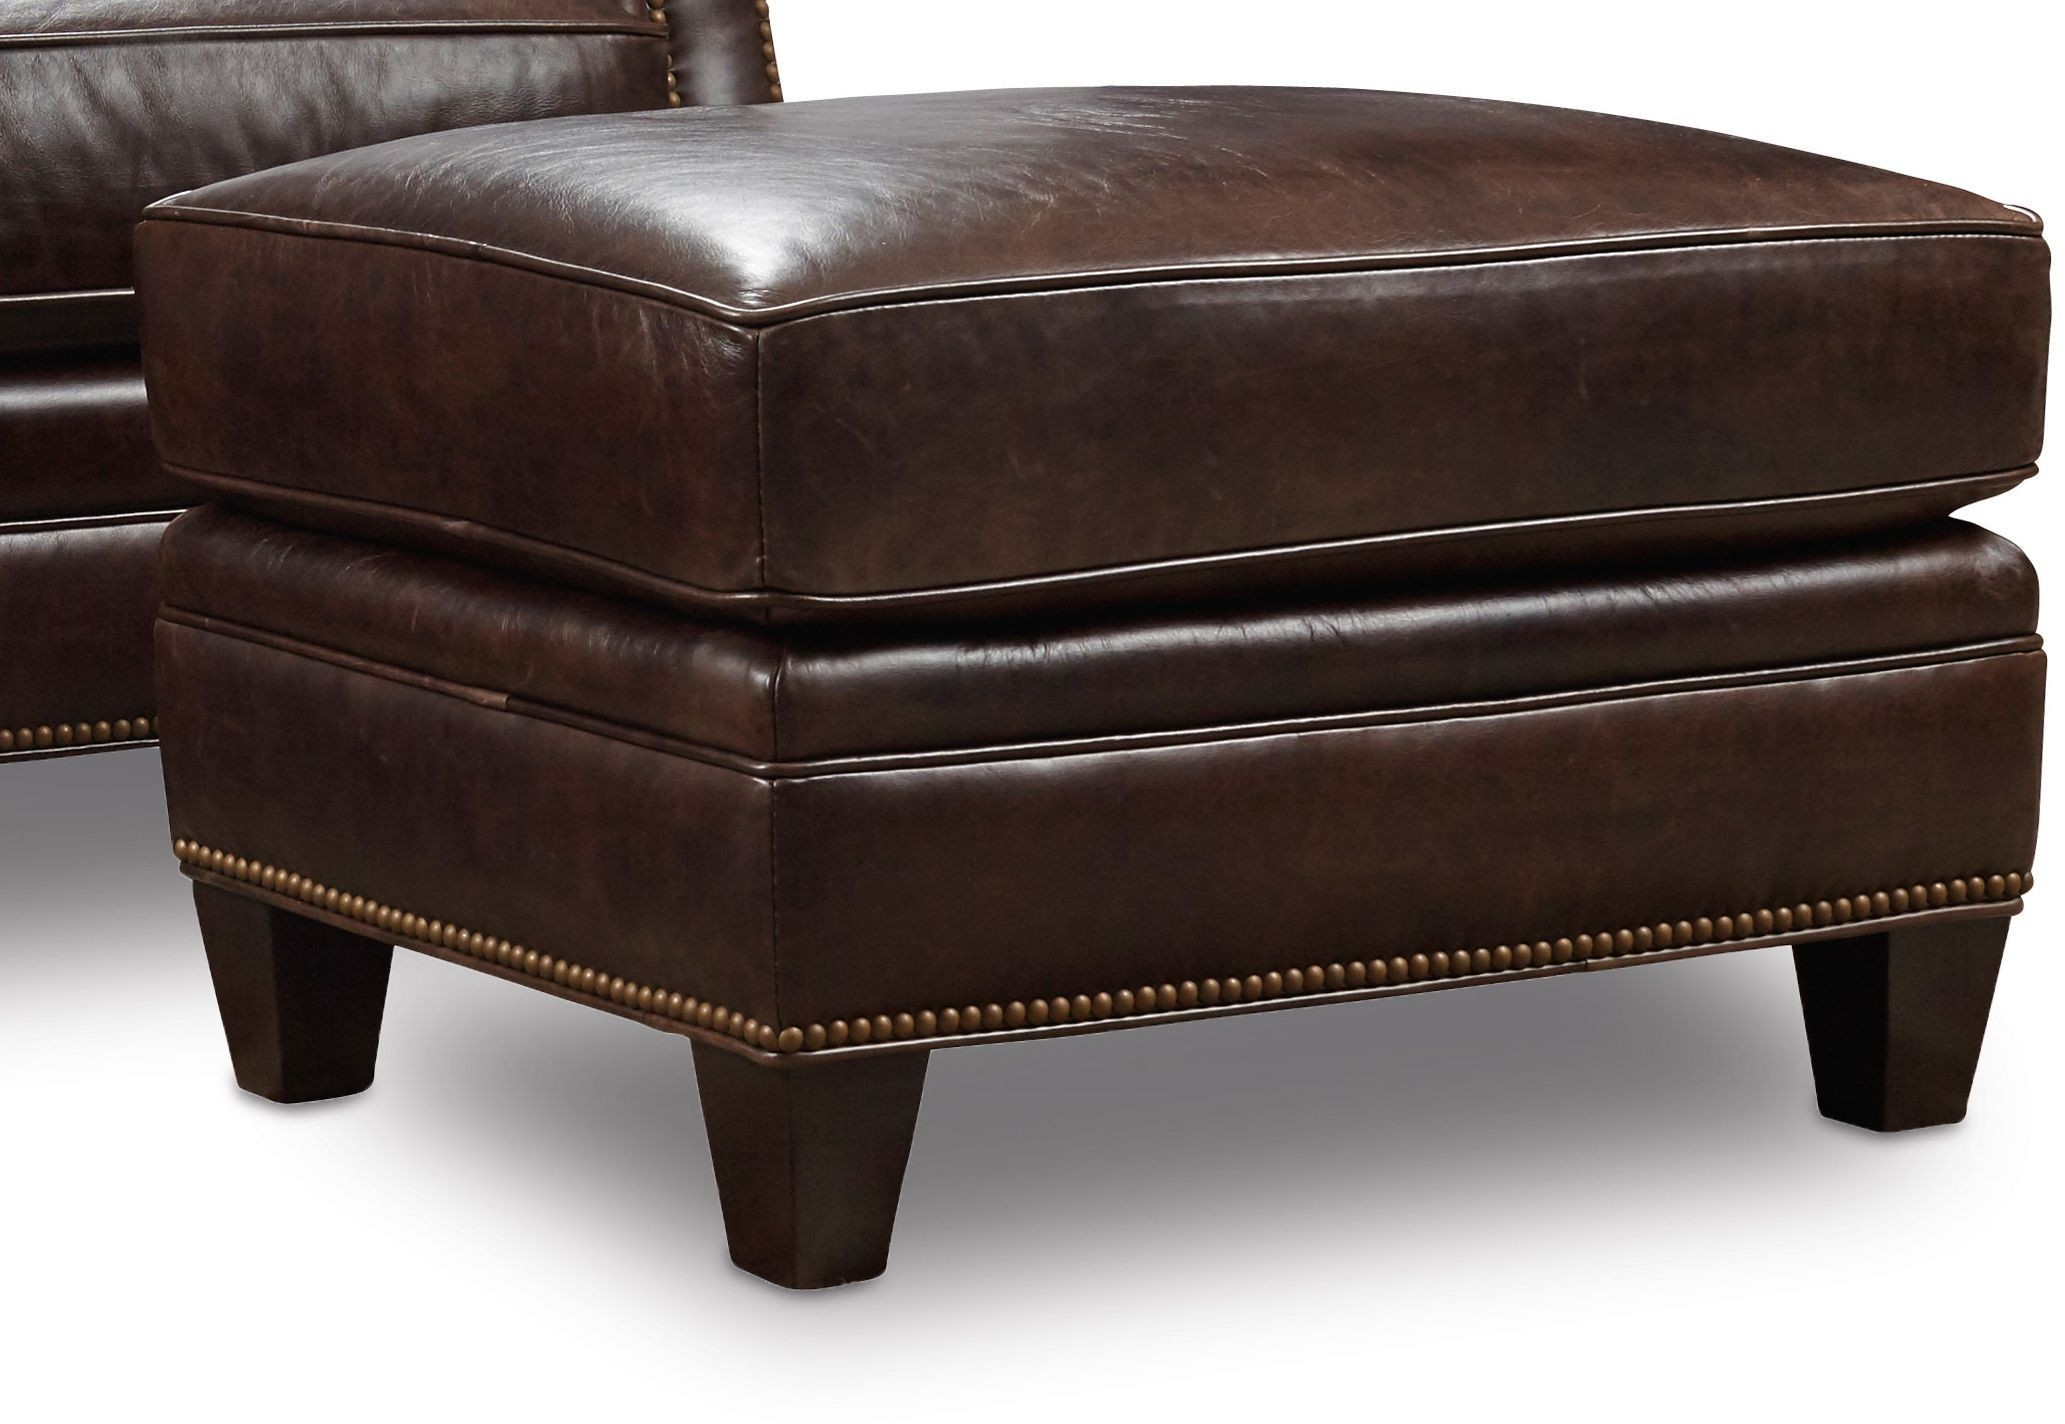 Bradshaw Brown Leather Ottoman From Hooker Coleman Furniture